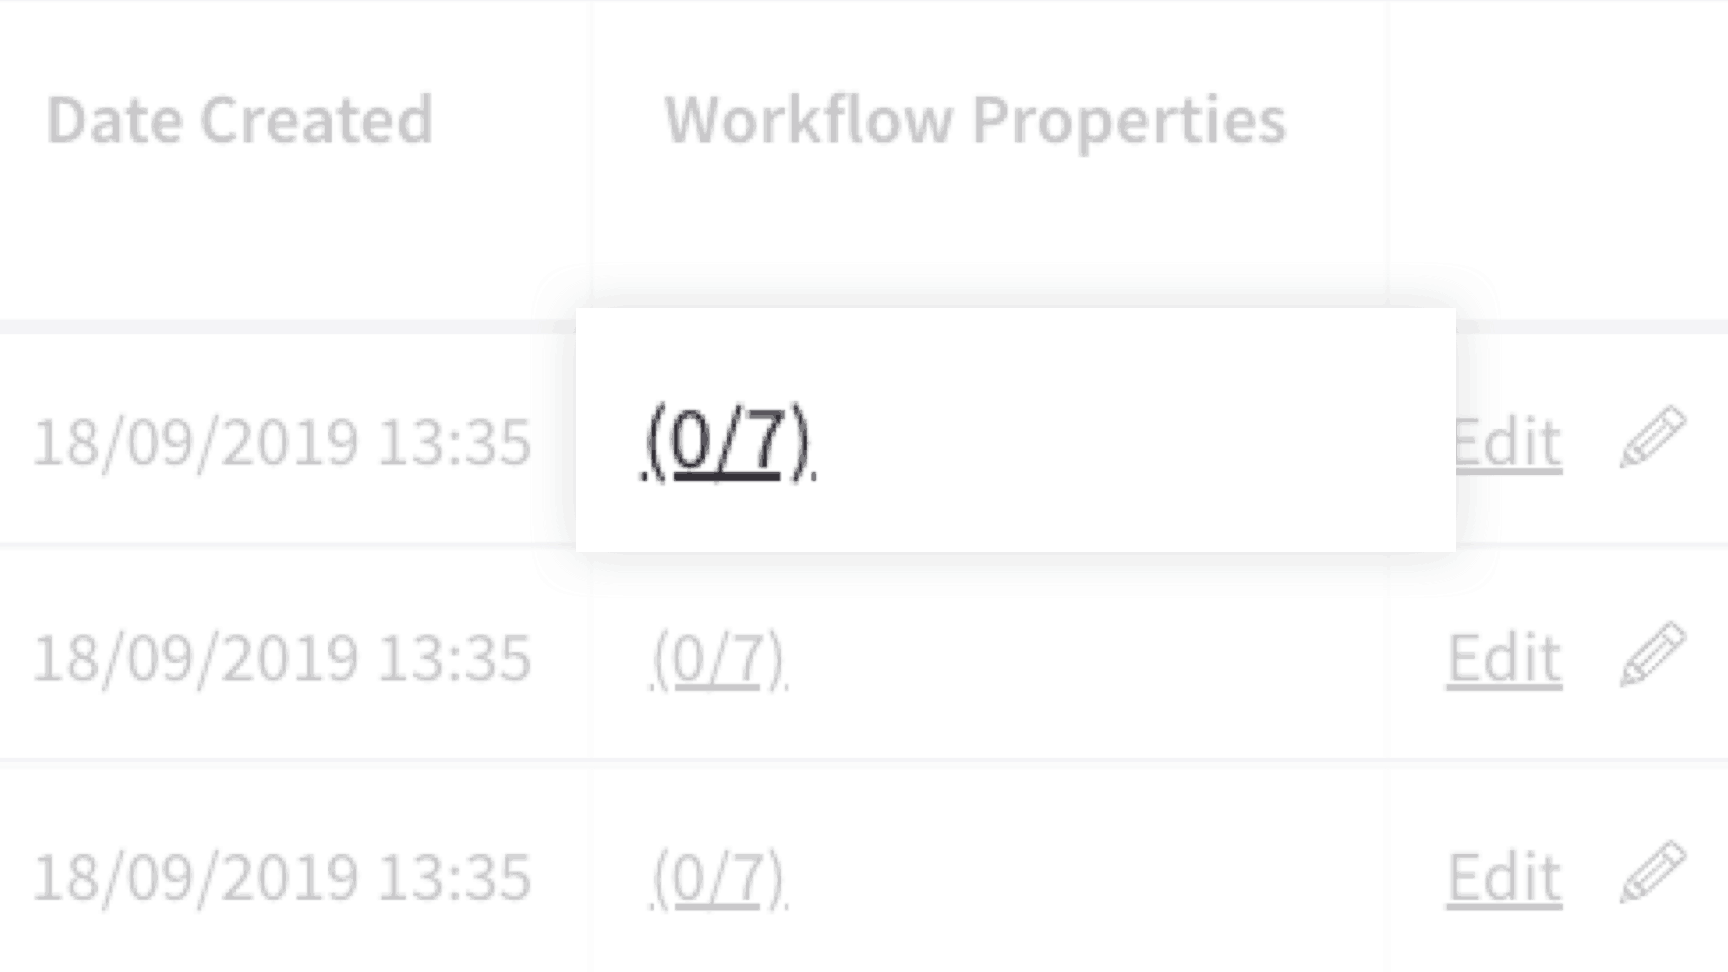 Selecting a workflow to apply to a property